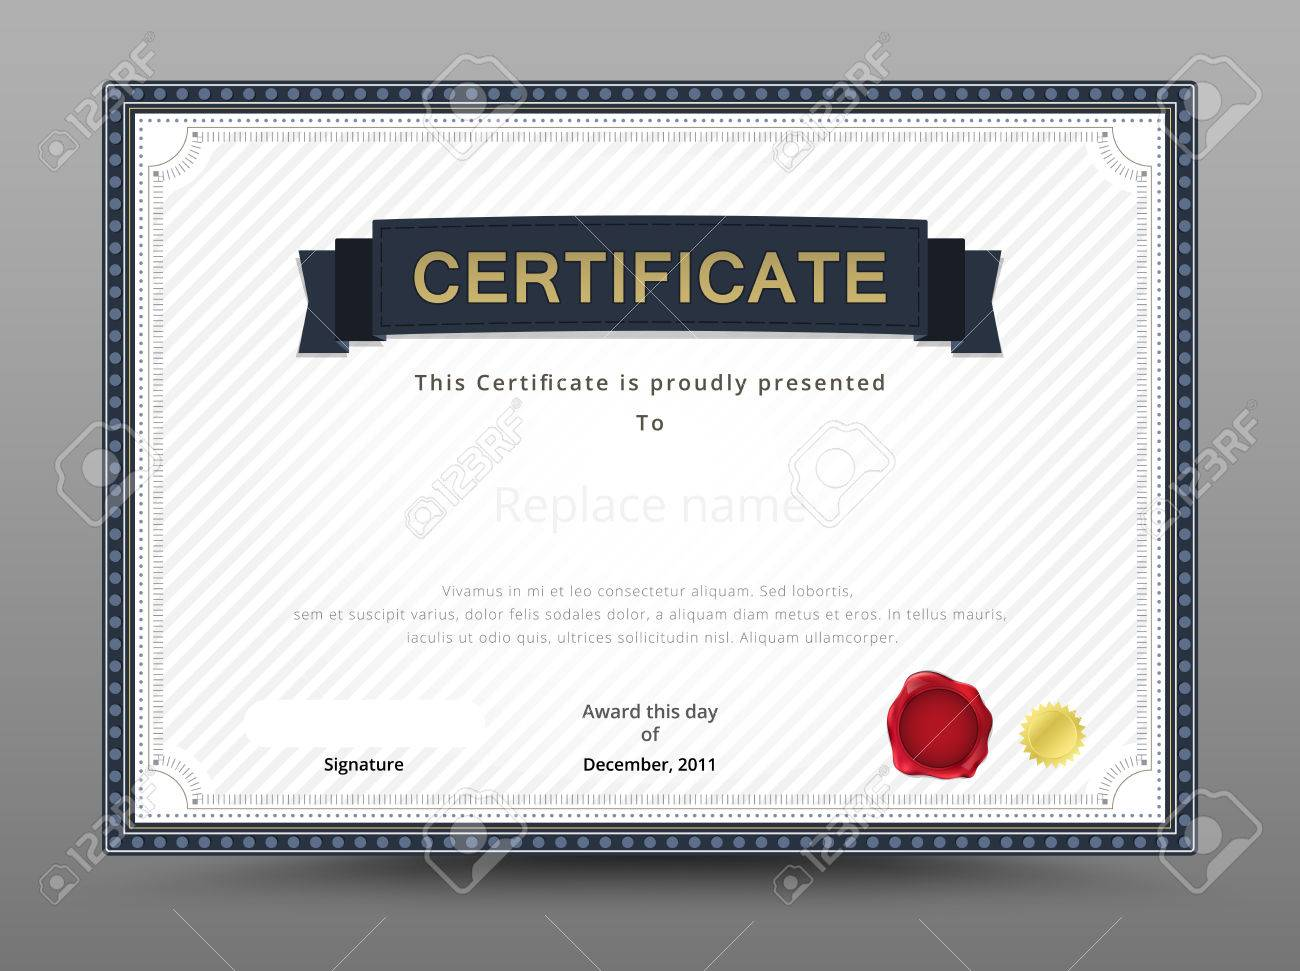 Free Business Certificate Templates Images Templates Example Free Business  Certificate Templates Images Templates Example Doc560420 Free  Free Business Certificate Templates